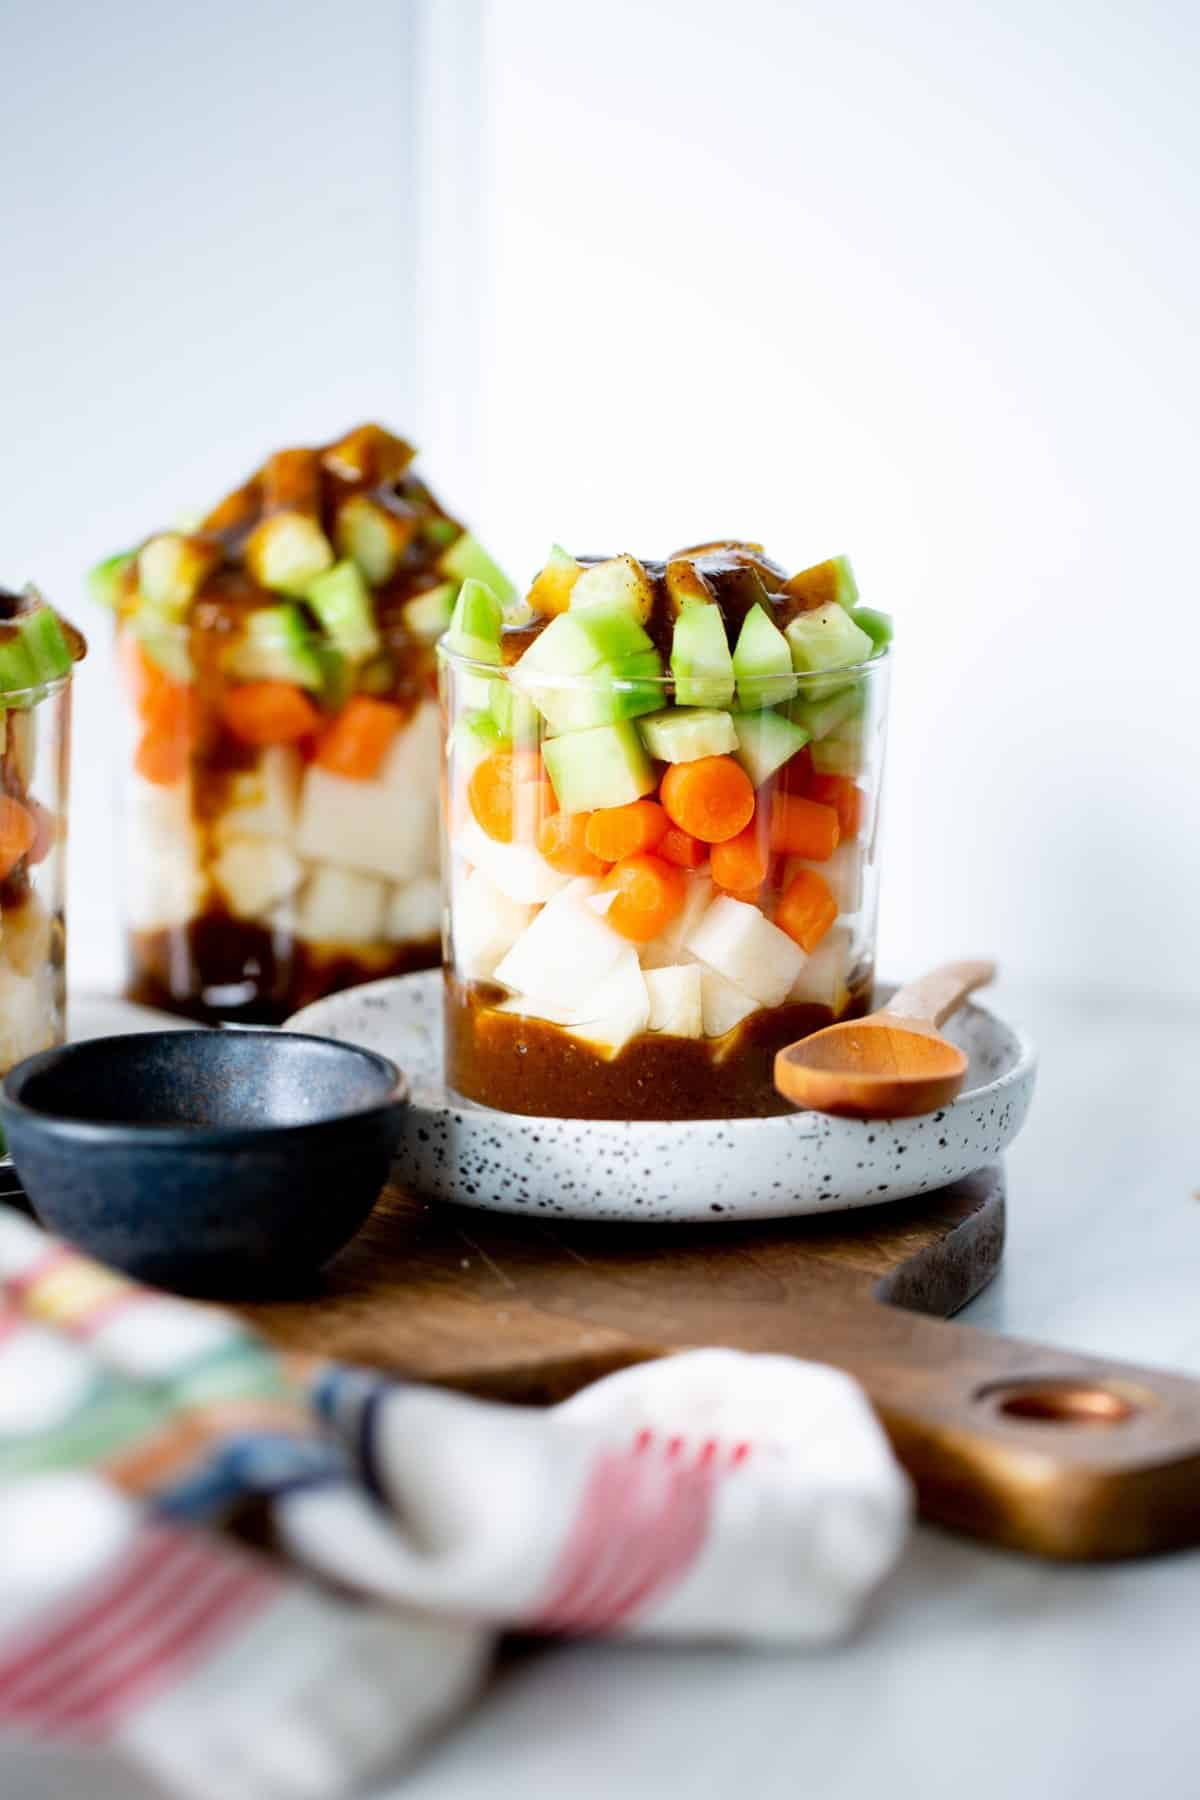 Glasses filled with chopped vegetables including jicama, carrots, and cucumbers on a wood board, with a wood spoon.